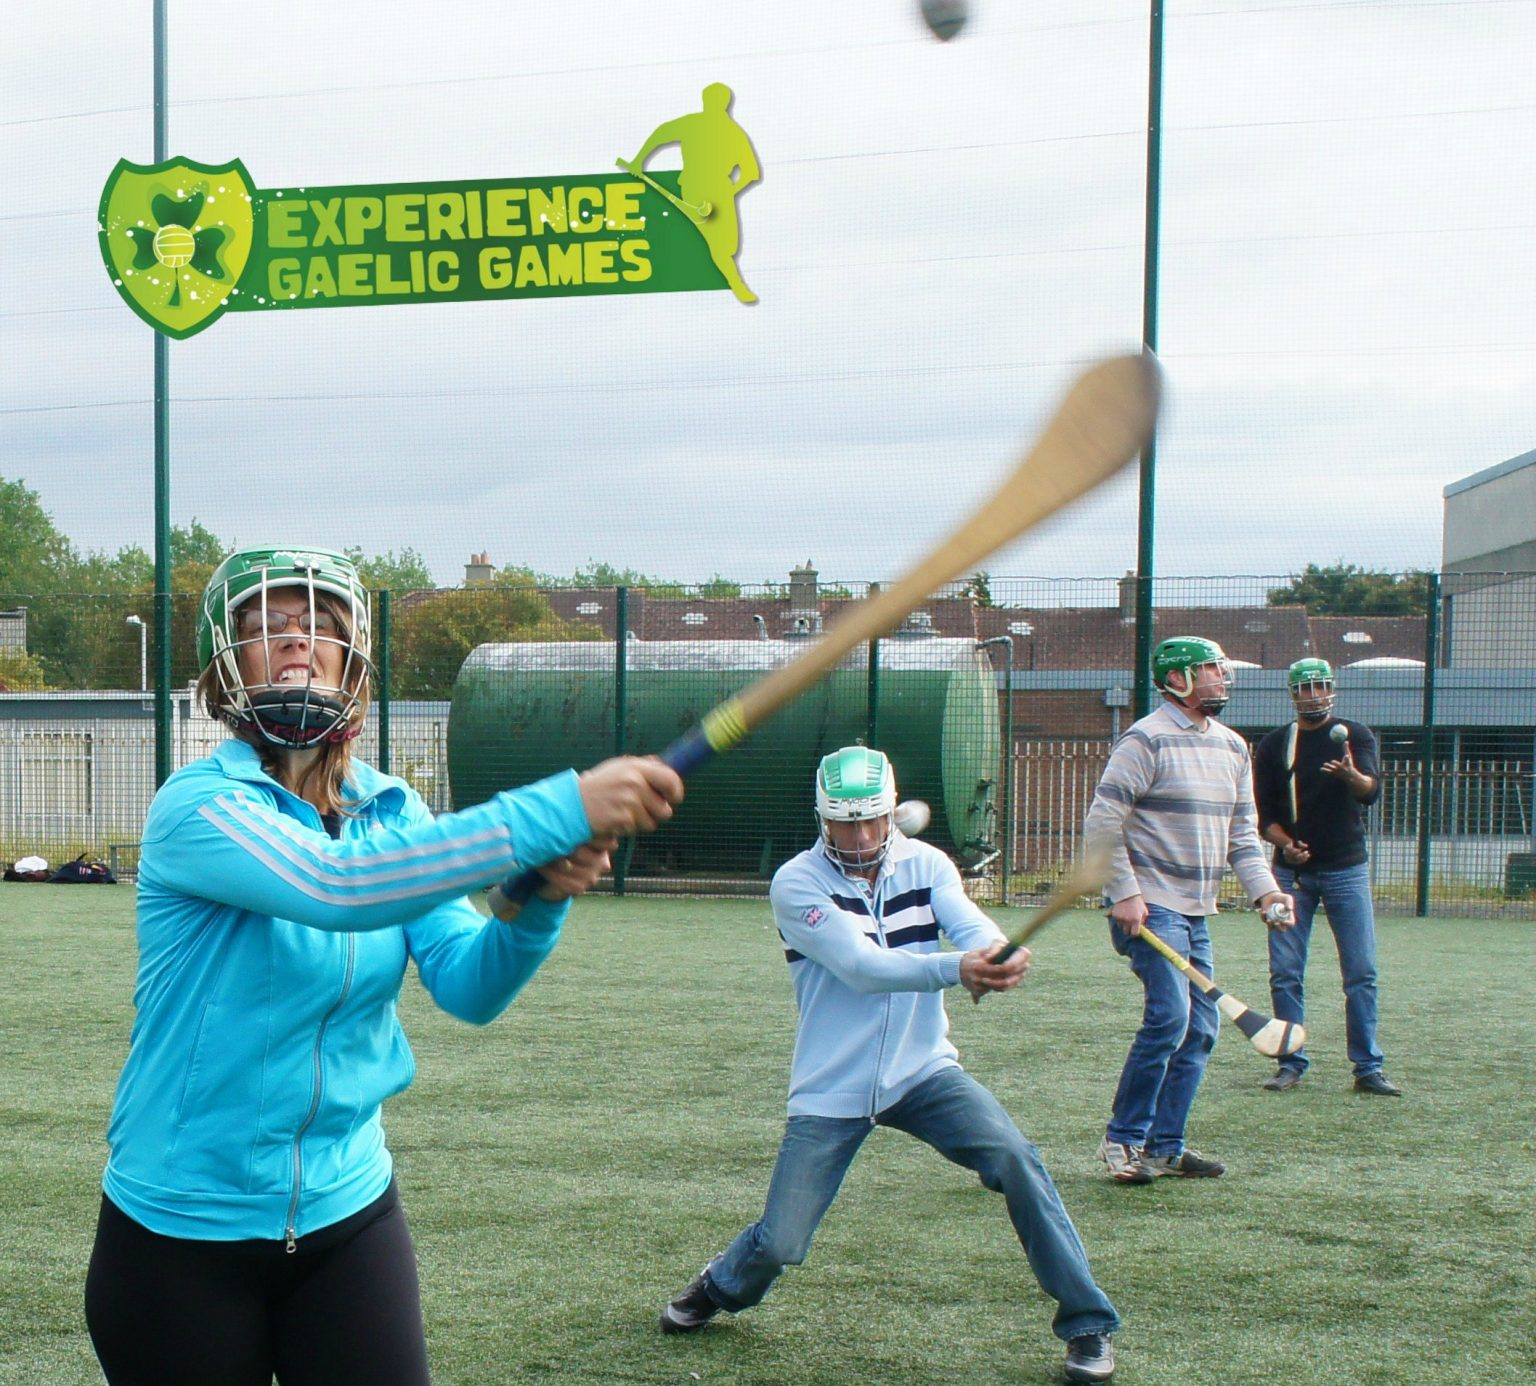 Hurling has been granted special status by UNESCO.